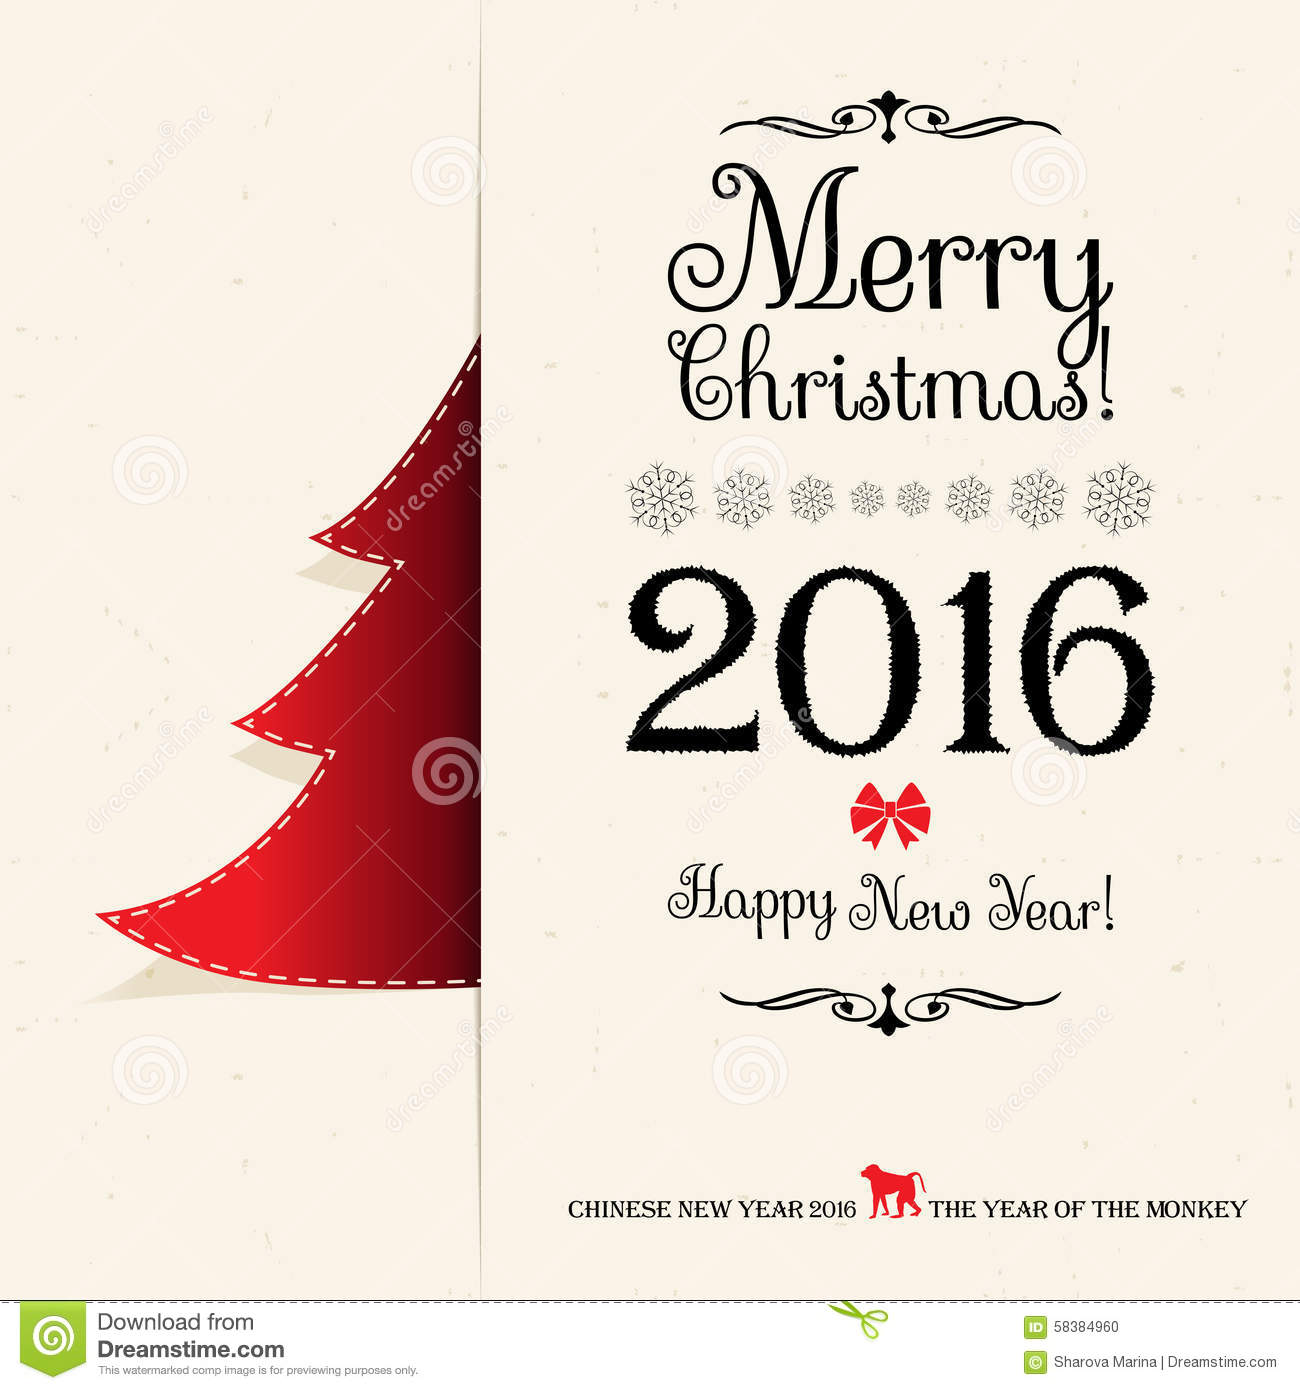 Merry Christmas and Happy New Year 2016 Clip Art